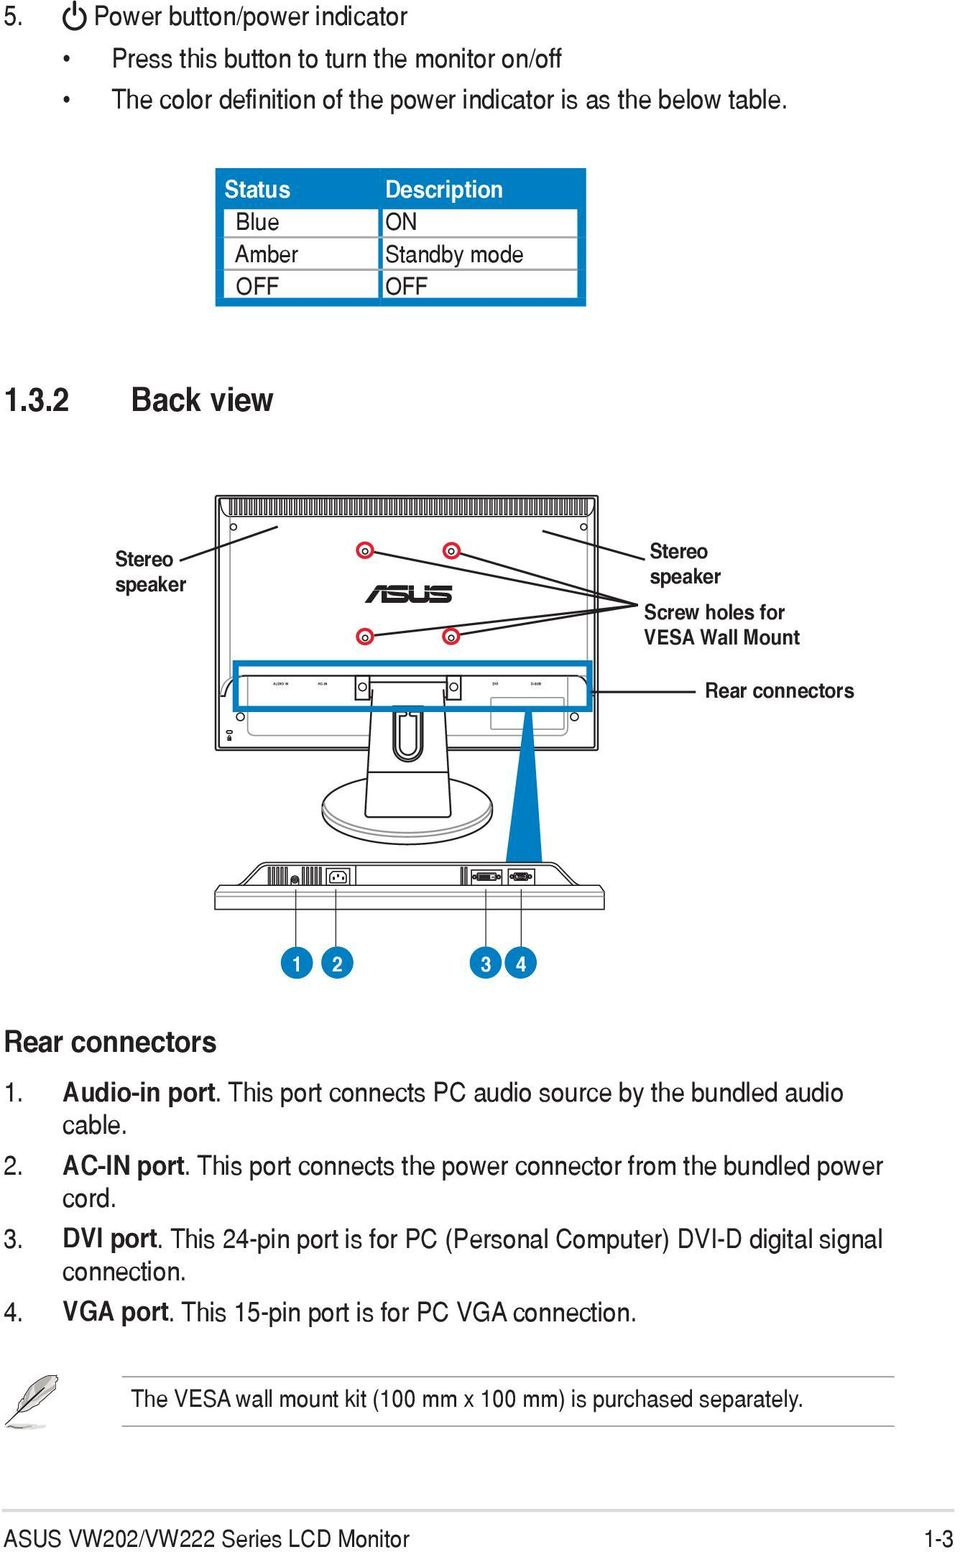 Vw202 Vw222 Series Lcd Monitor User Guide Pdf Asus Power Button Wiring Diagram Audio In Port This Connects Pc Source By The Bundled Cable